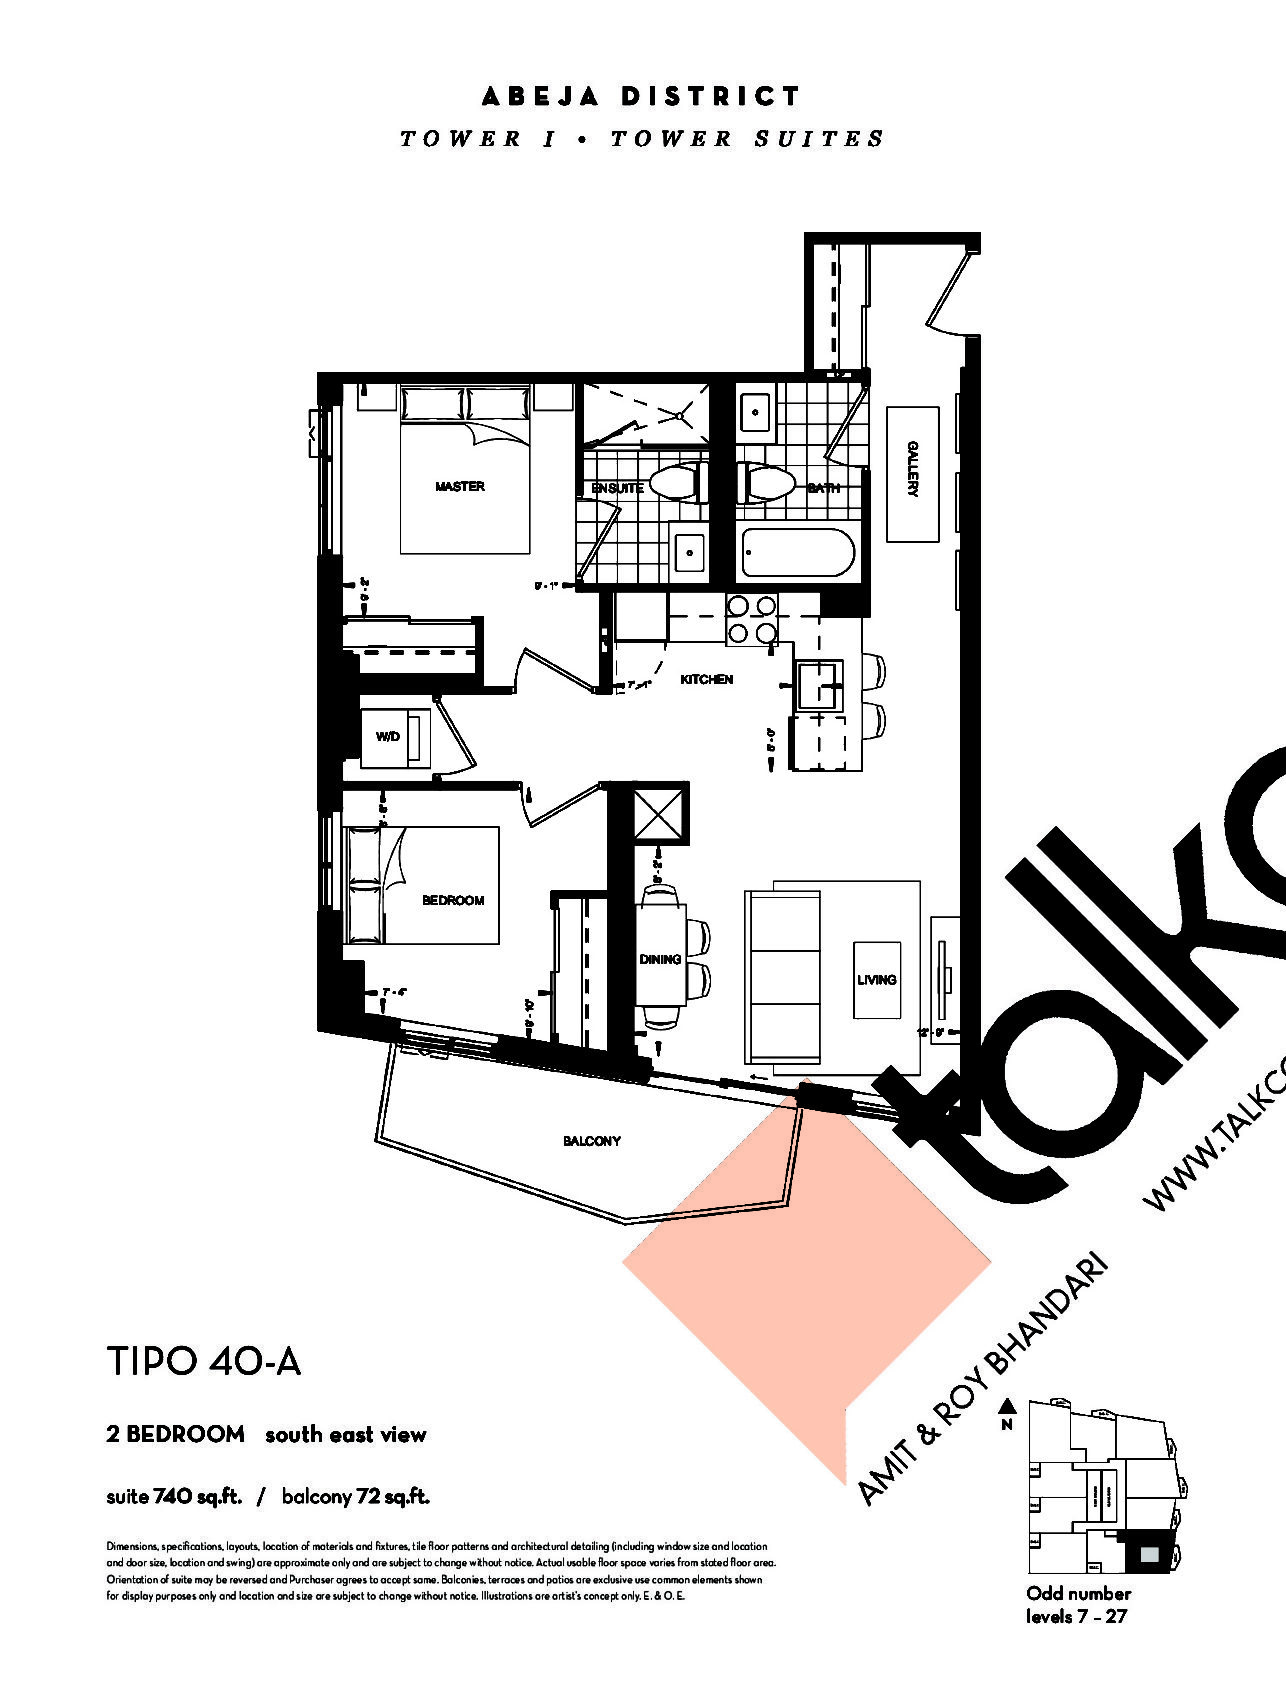 TIPO 40-A (Tower) Floor Plan at Abeja District Condos - 740 sq.ft